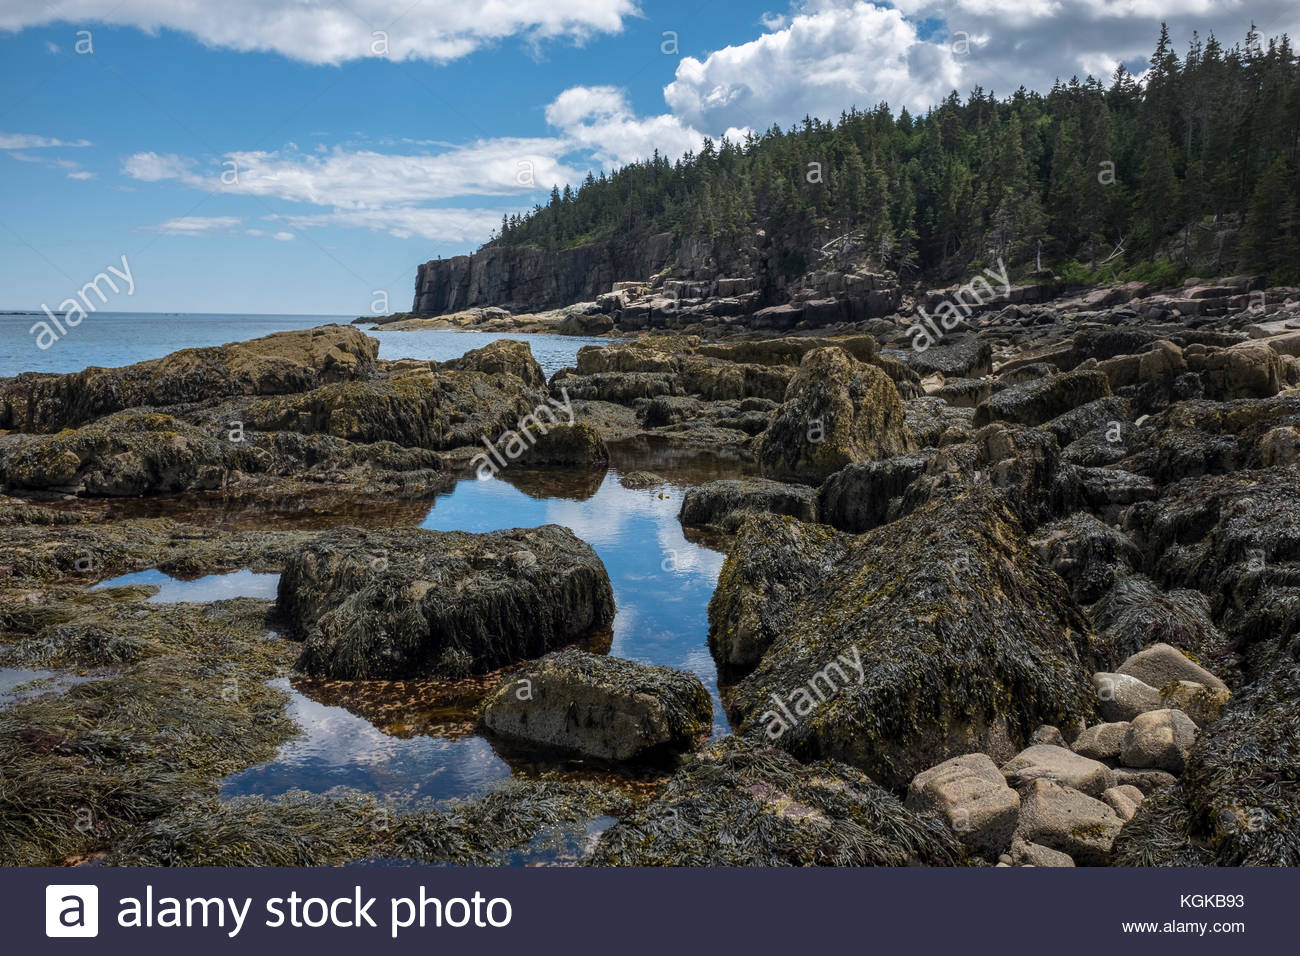 Low tide along the shoreline at Acadia National Park. - Stock Image